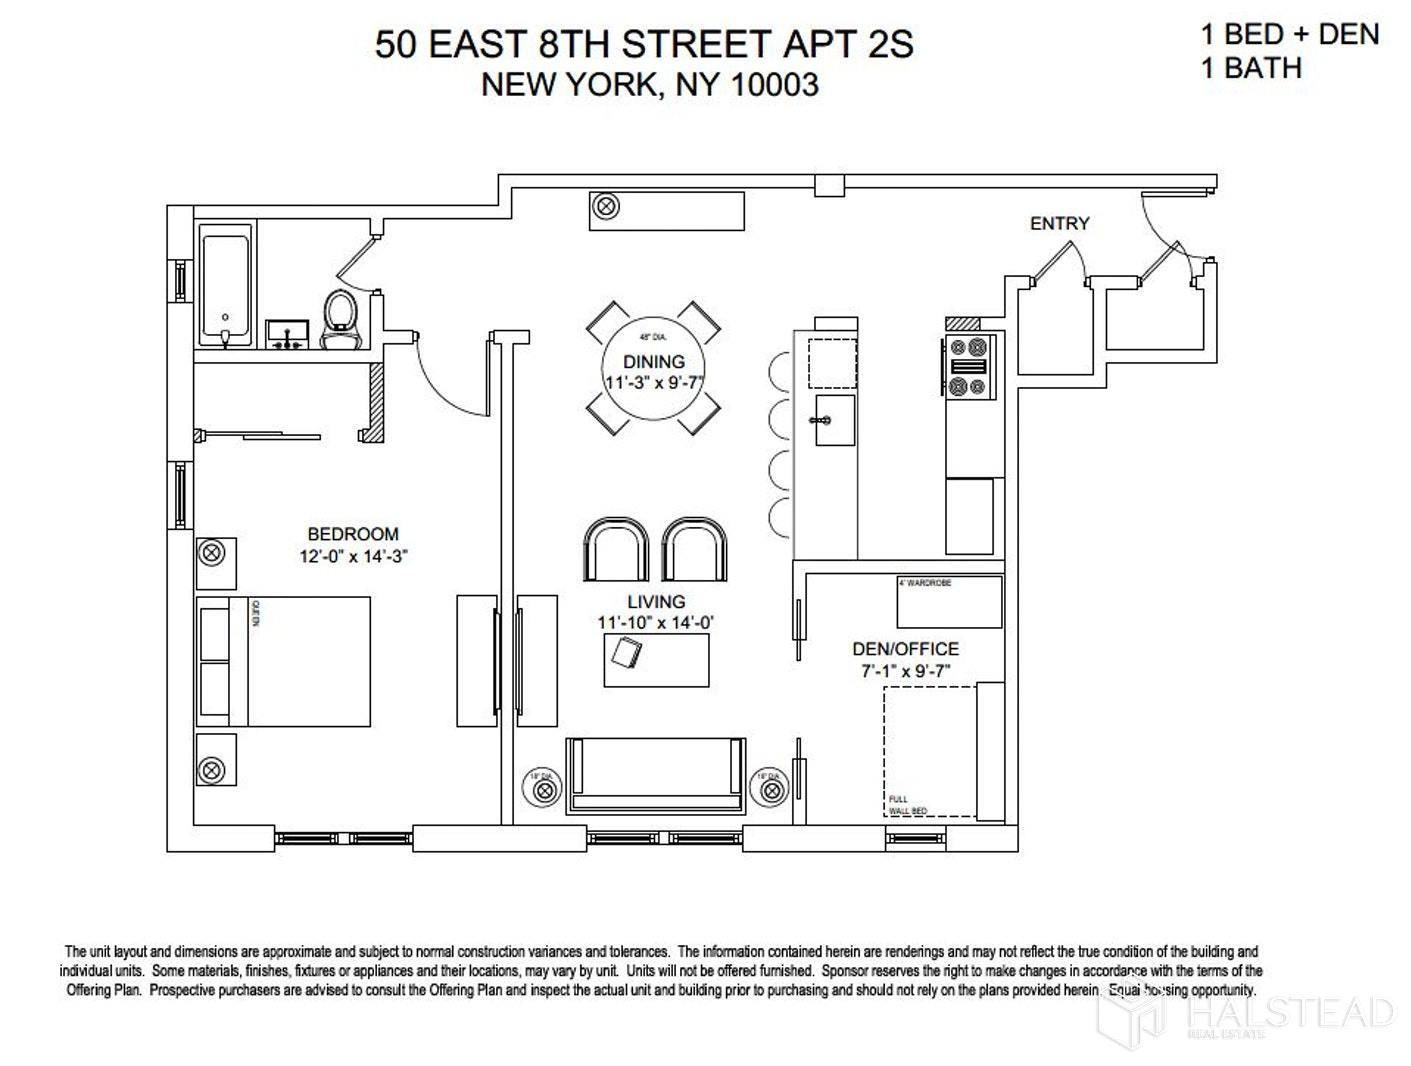 Apartment for sale at 50 East 8th Street, Apt 2S